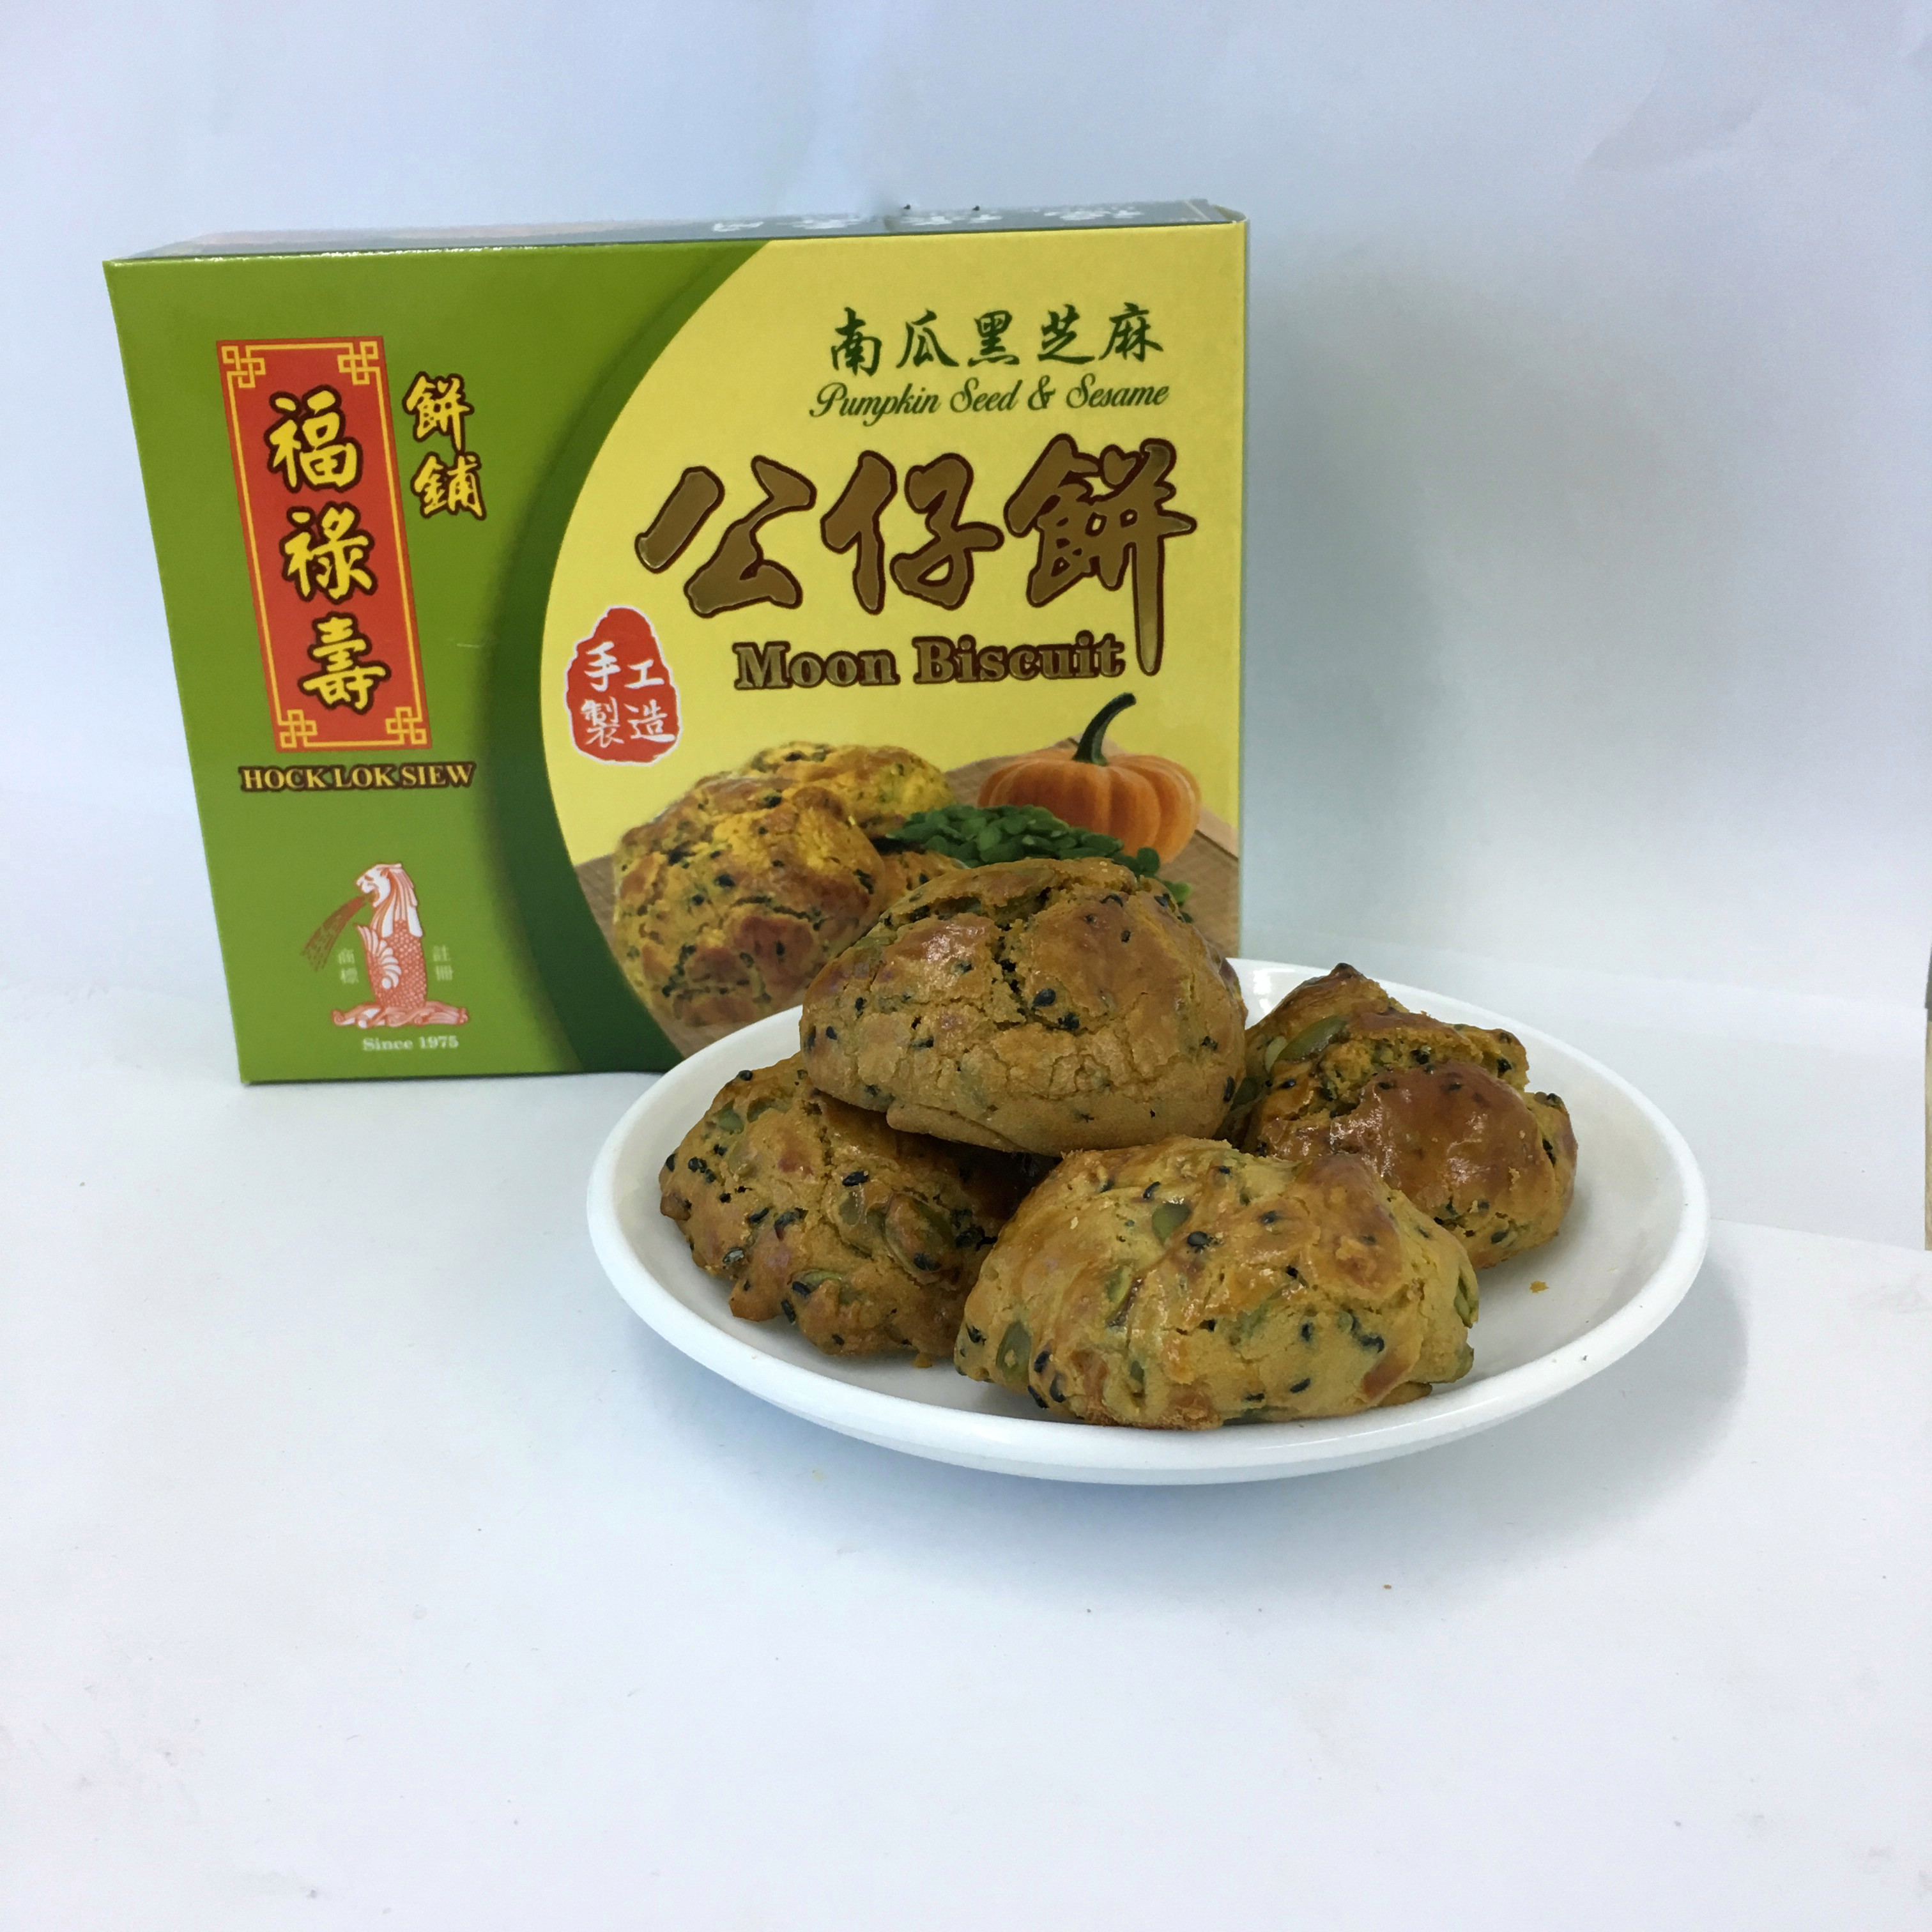 image of Pumpkin Seed & Sesame Moon Biscuit 南瓜黑芝麻公仔饼